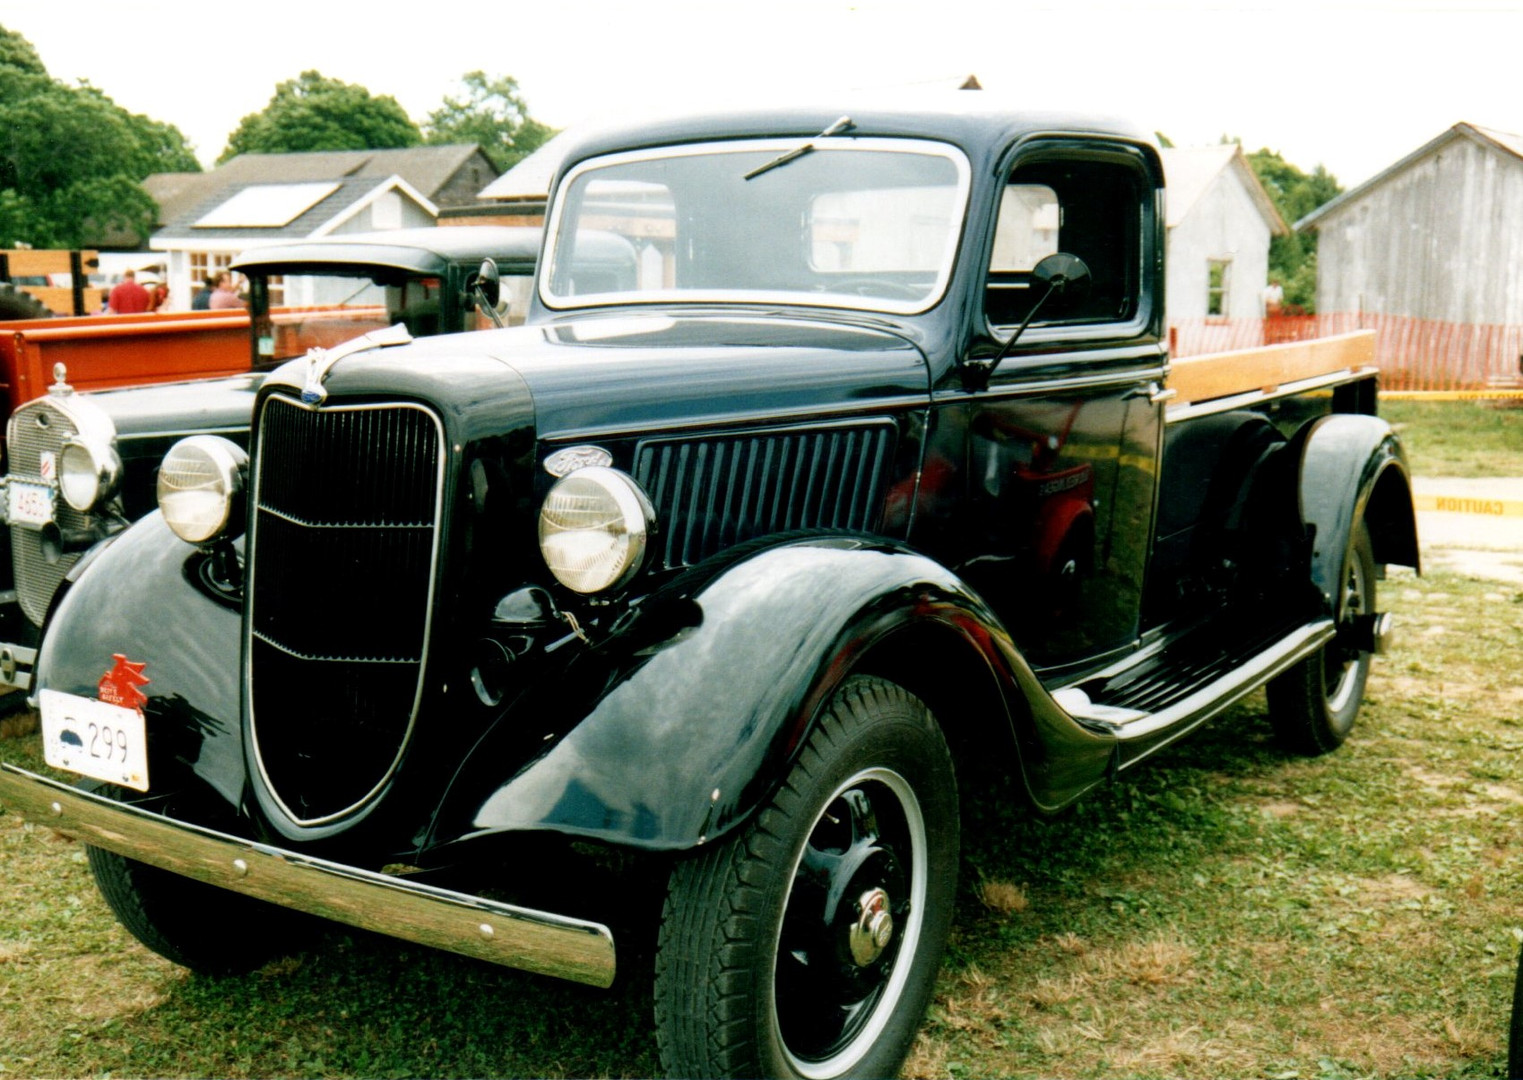 1936 Ford pickup from Rhode Island